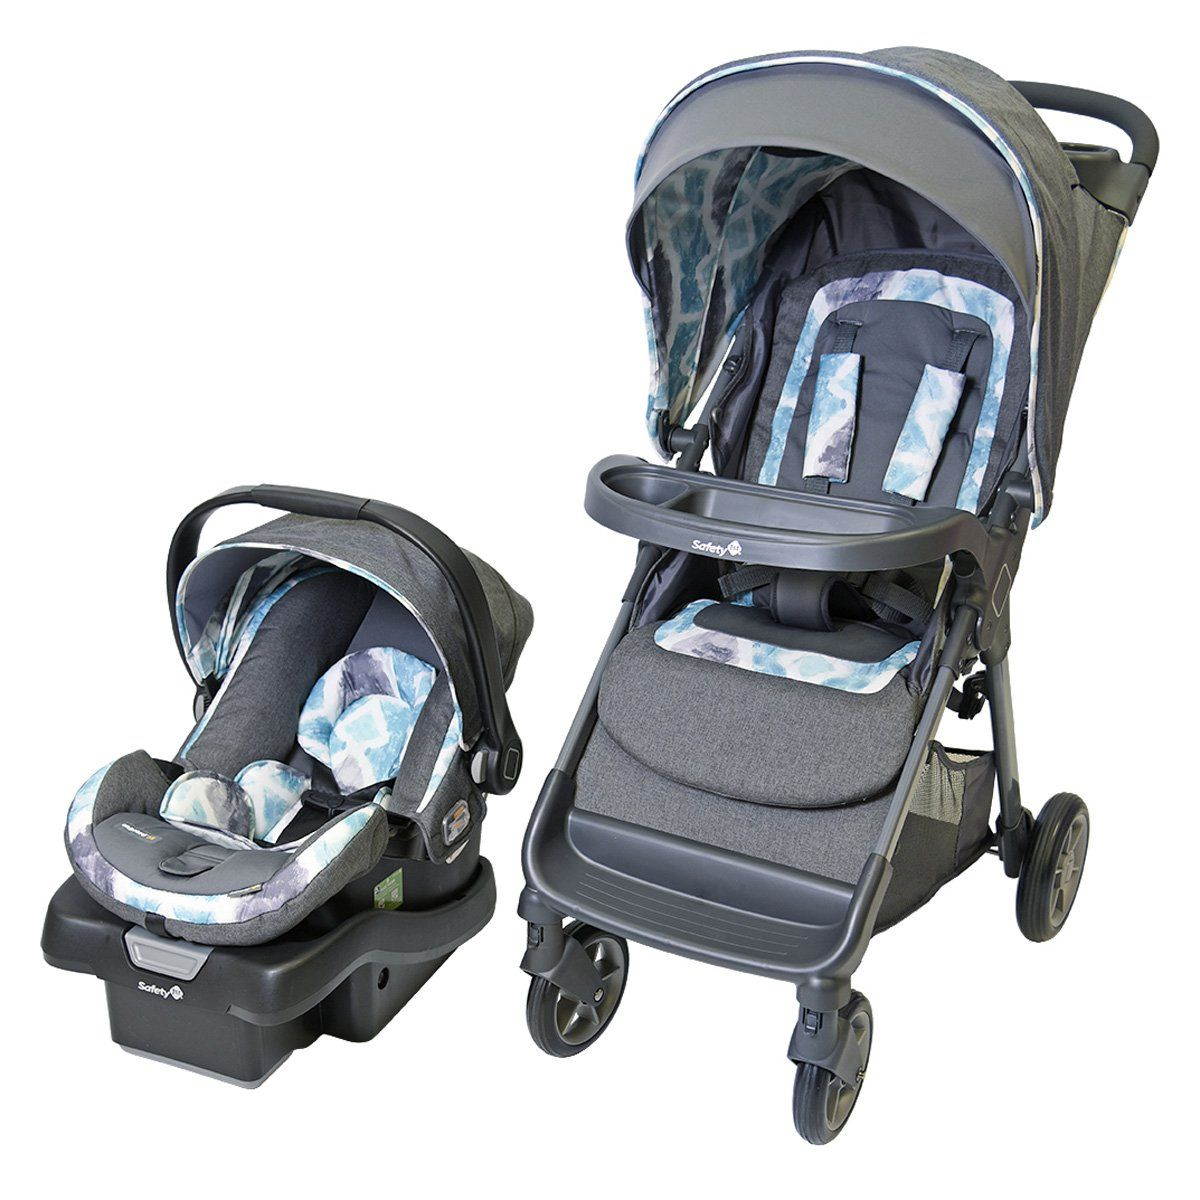 Safety 1st Smooth Ride LX Travel System Reverie Travel